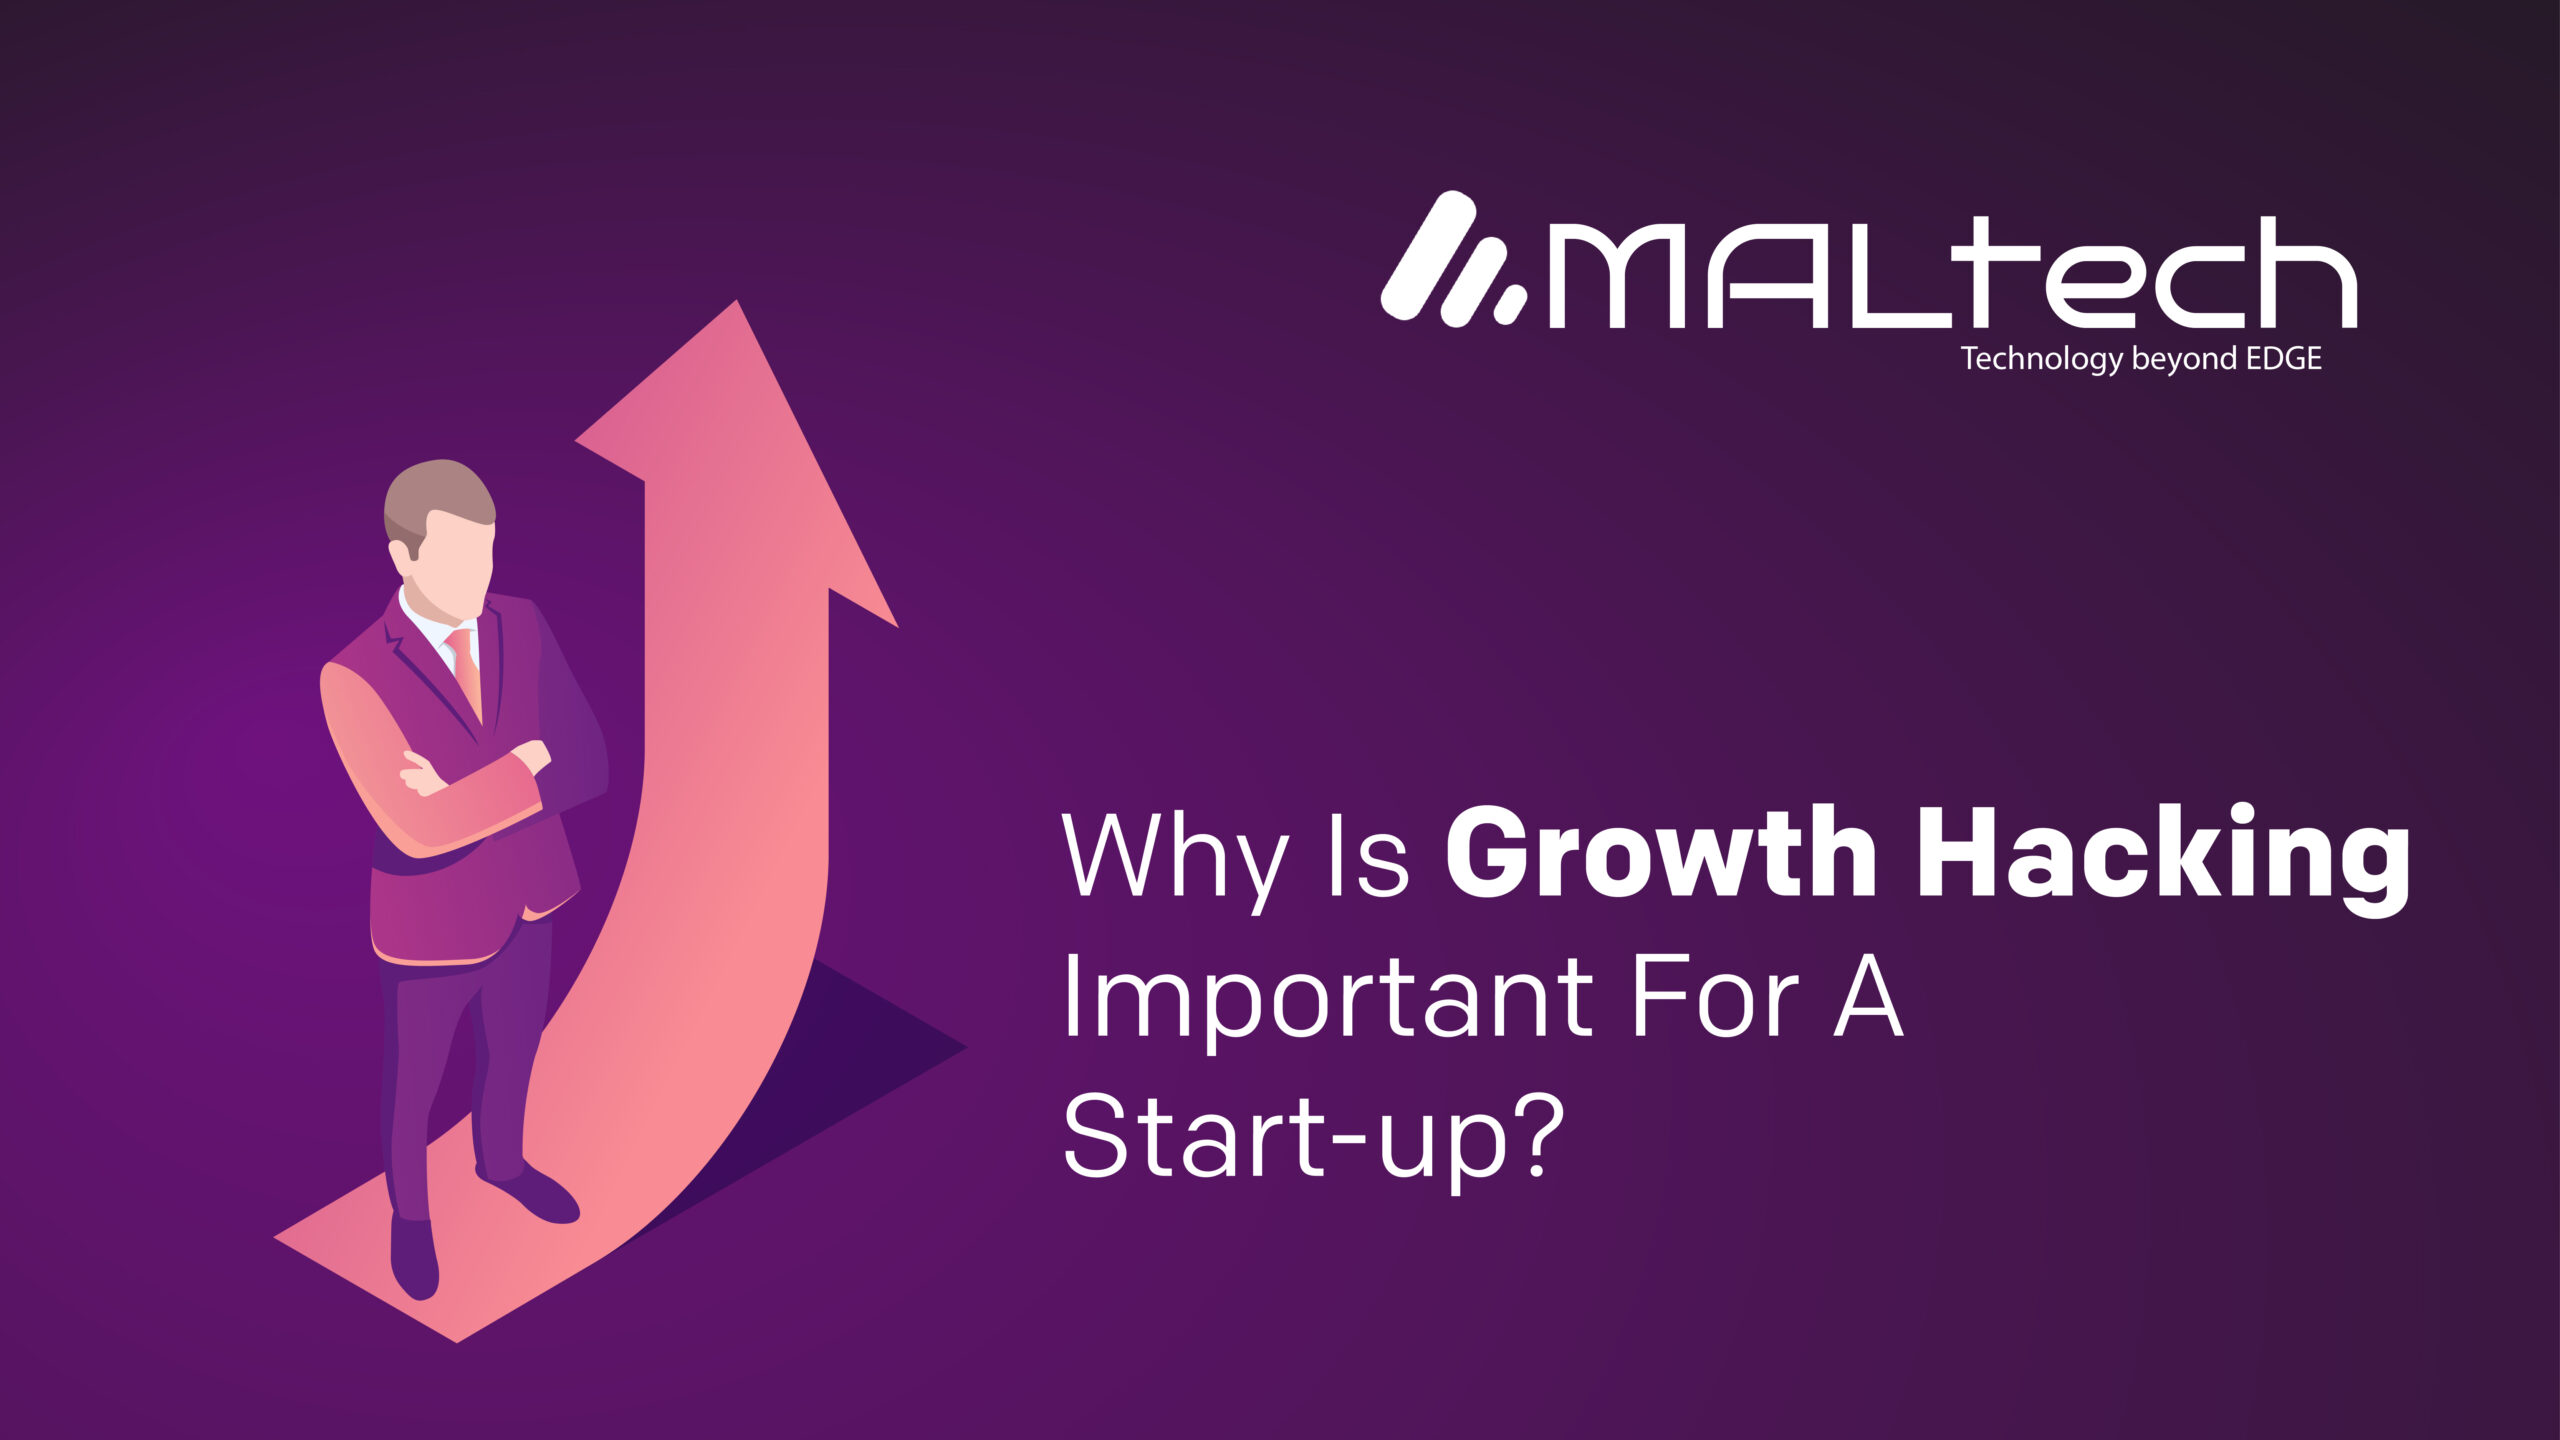 Why Is Growth Hacking Important for a Start-up?